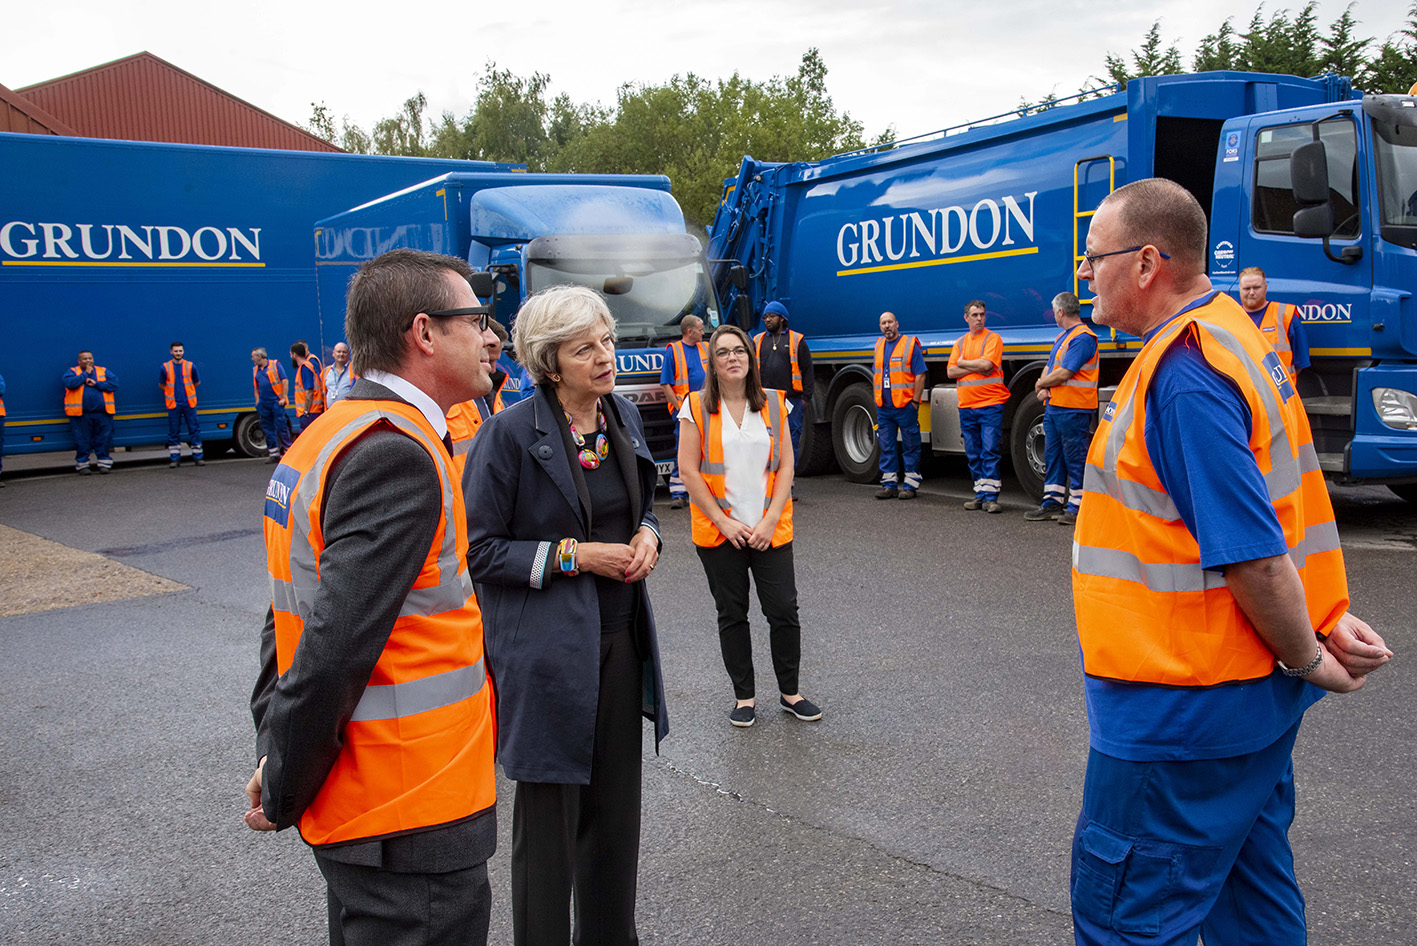 During her visit, Theresa May MP met some of the specialist clinical waste drivers and treatment facility operators, plus other members of the Knowl Hill team, including Mark Padgham (left) and Graham Dunstan (right)